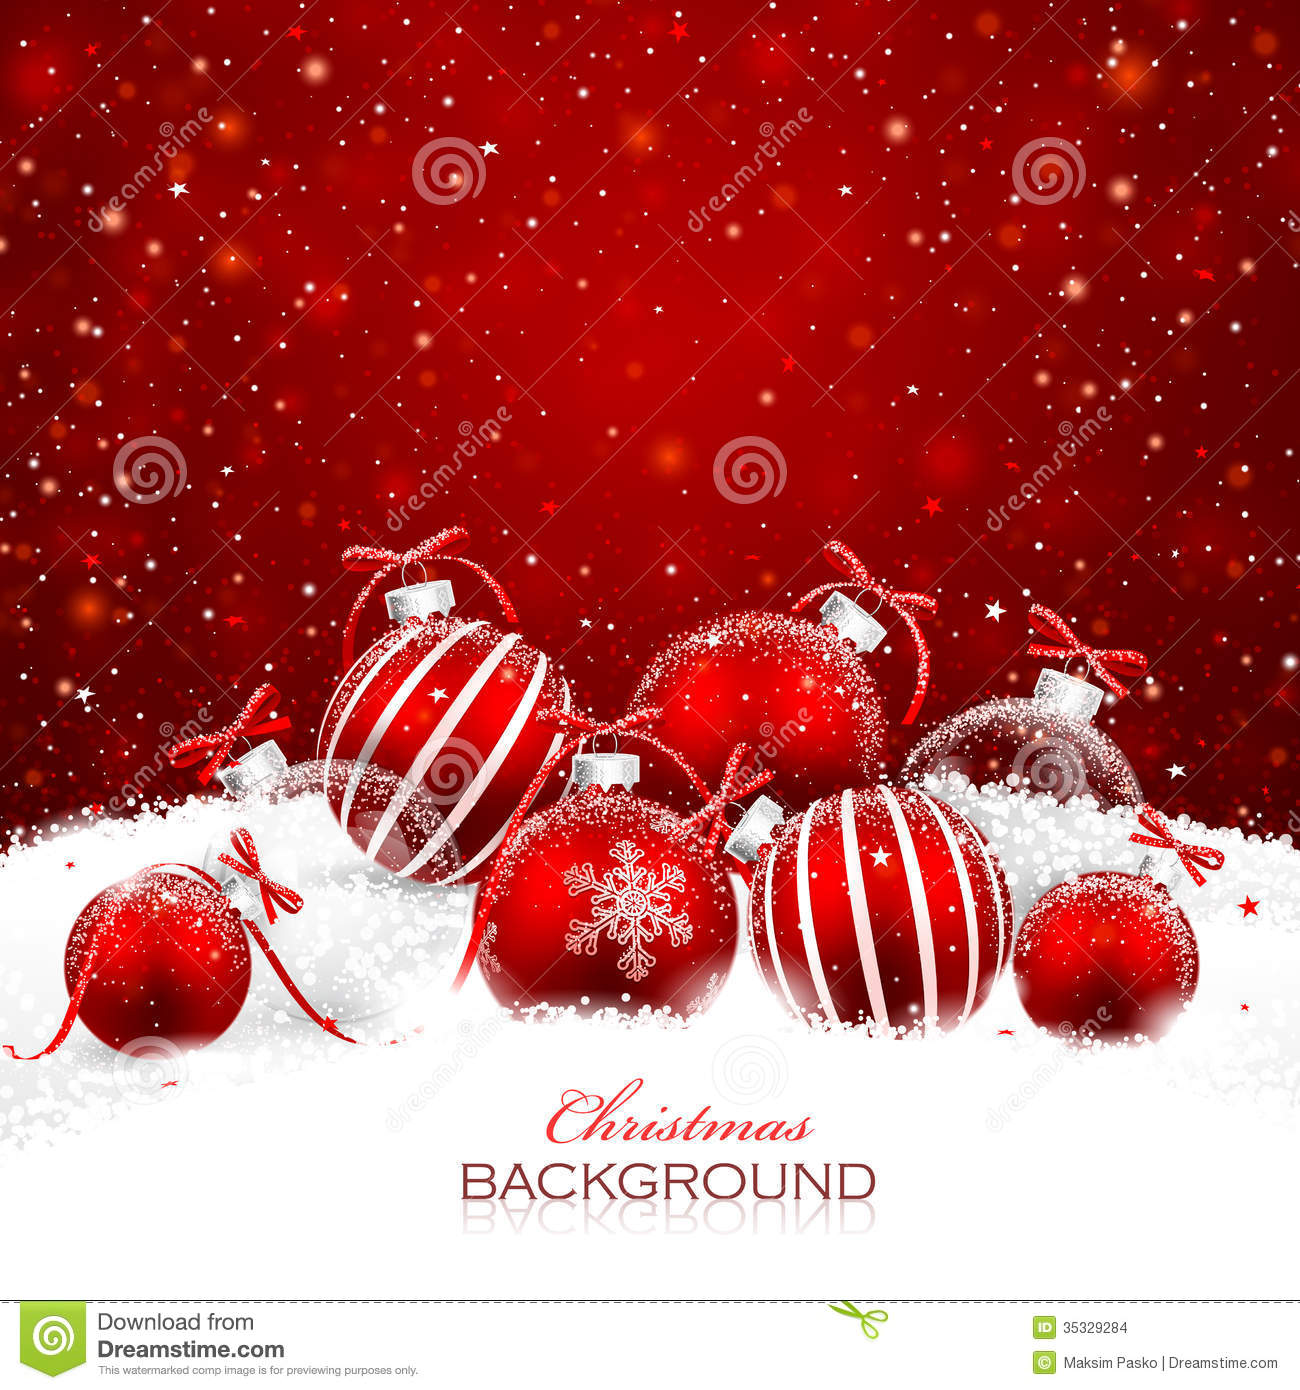 Black And Silver Wallpaper Christmas Decorations In The Snow Stock Vector Image